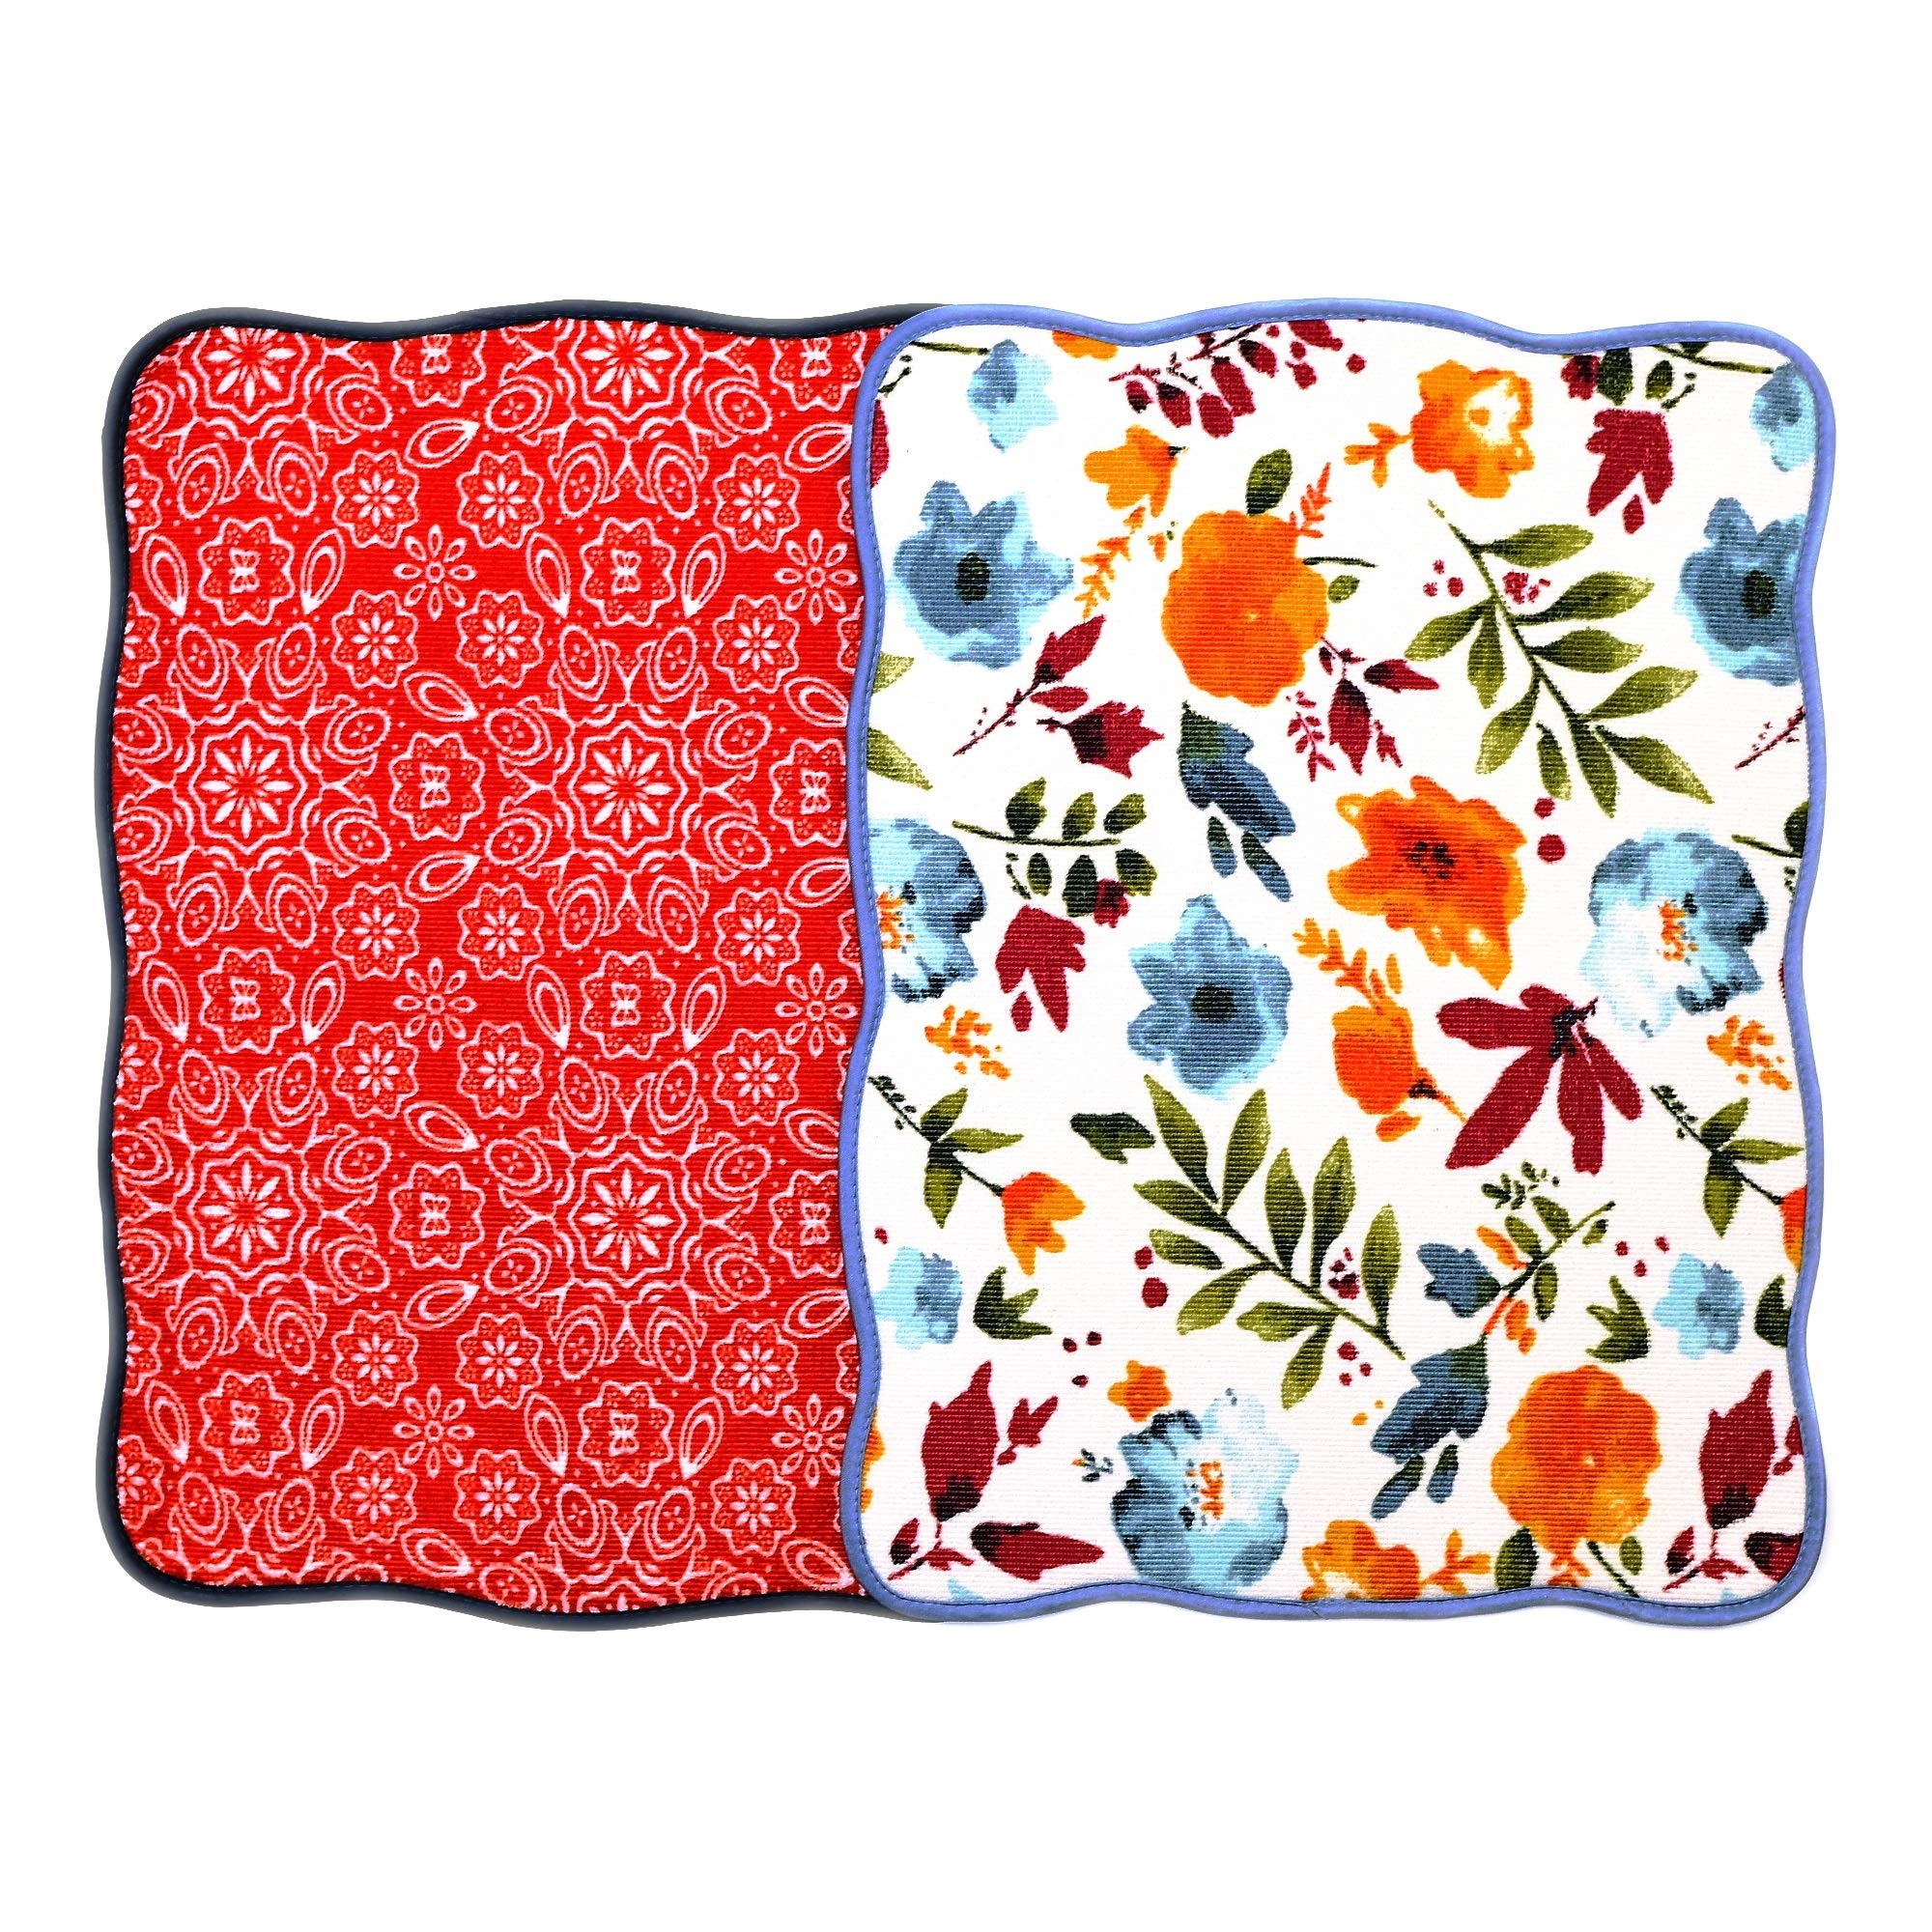 Microfiber Dish Drying Mat 15''x20'' Florals Printing Best for Home & Kitchen By Bear Family- Pack of 2 (C)